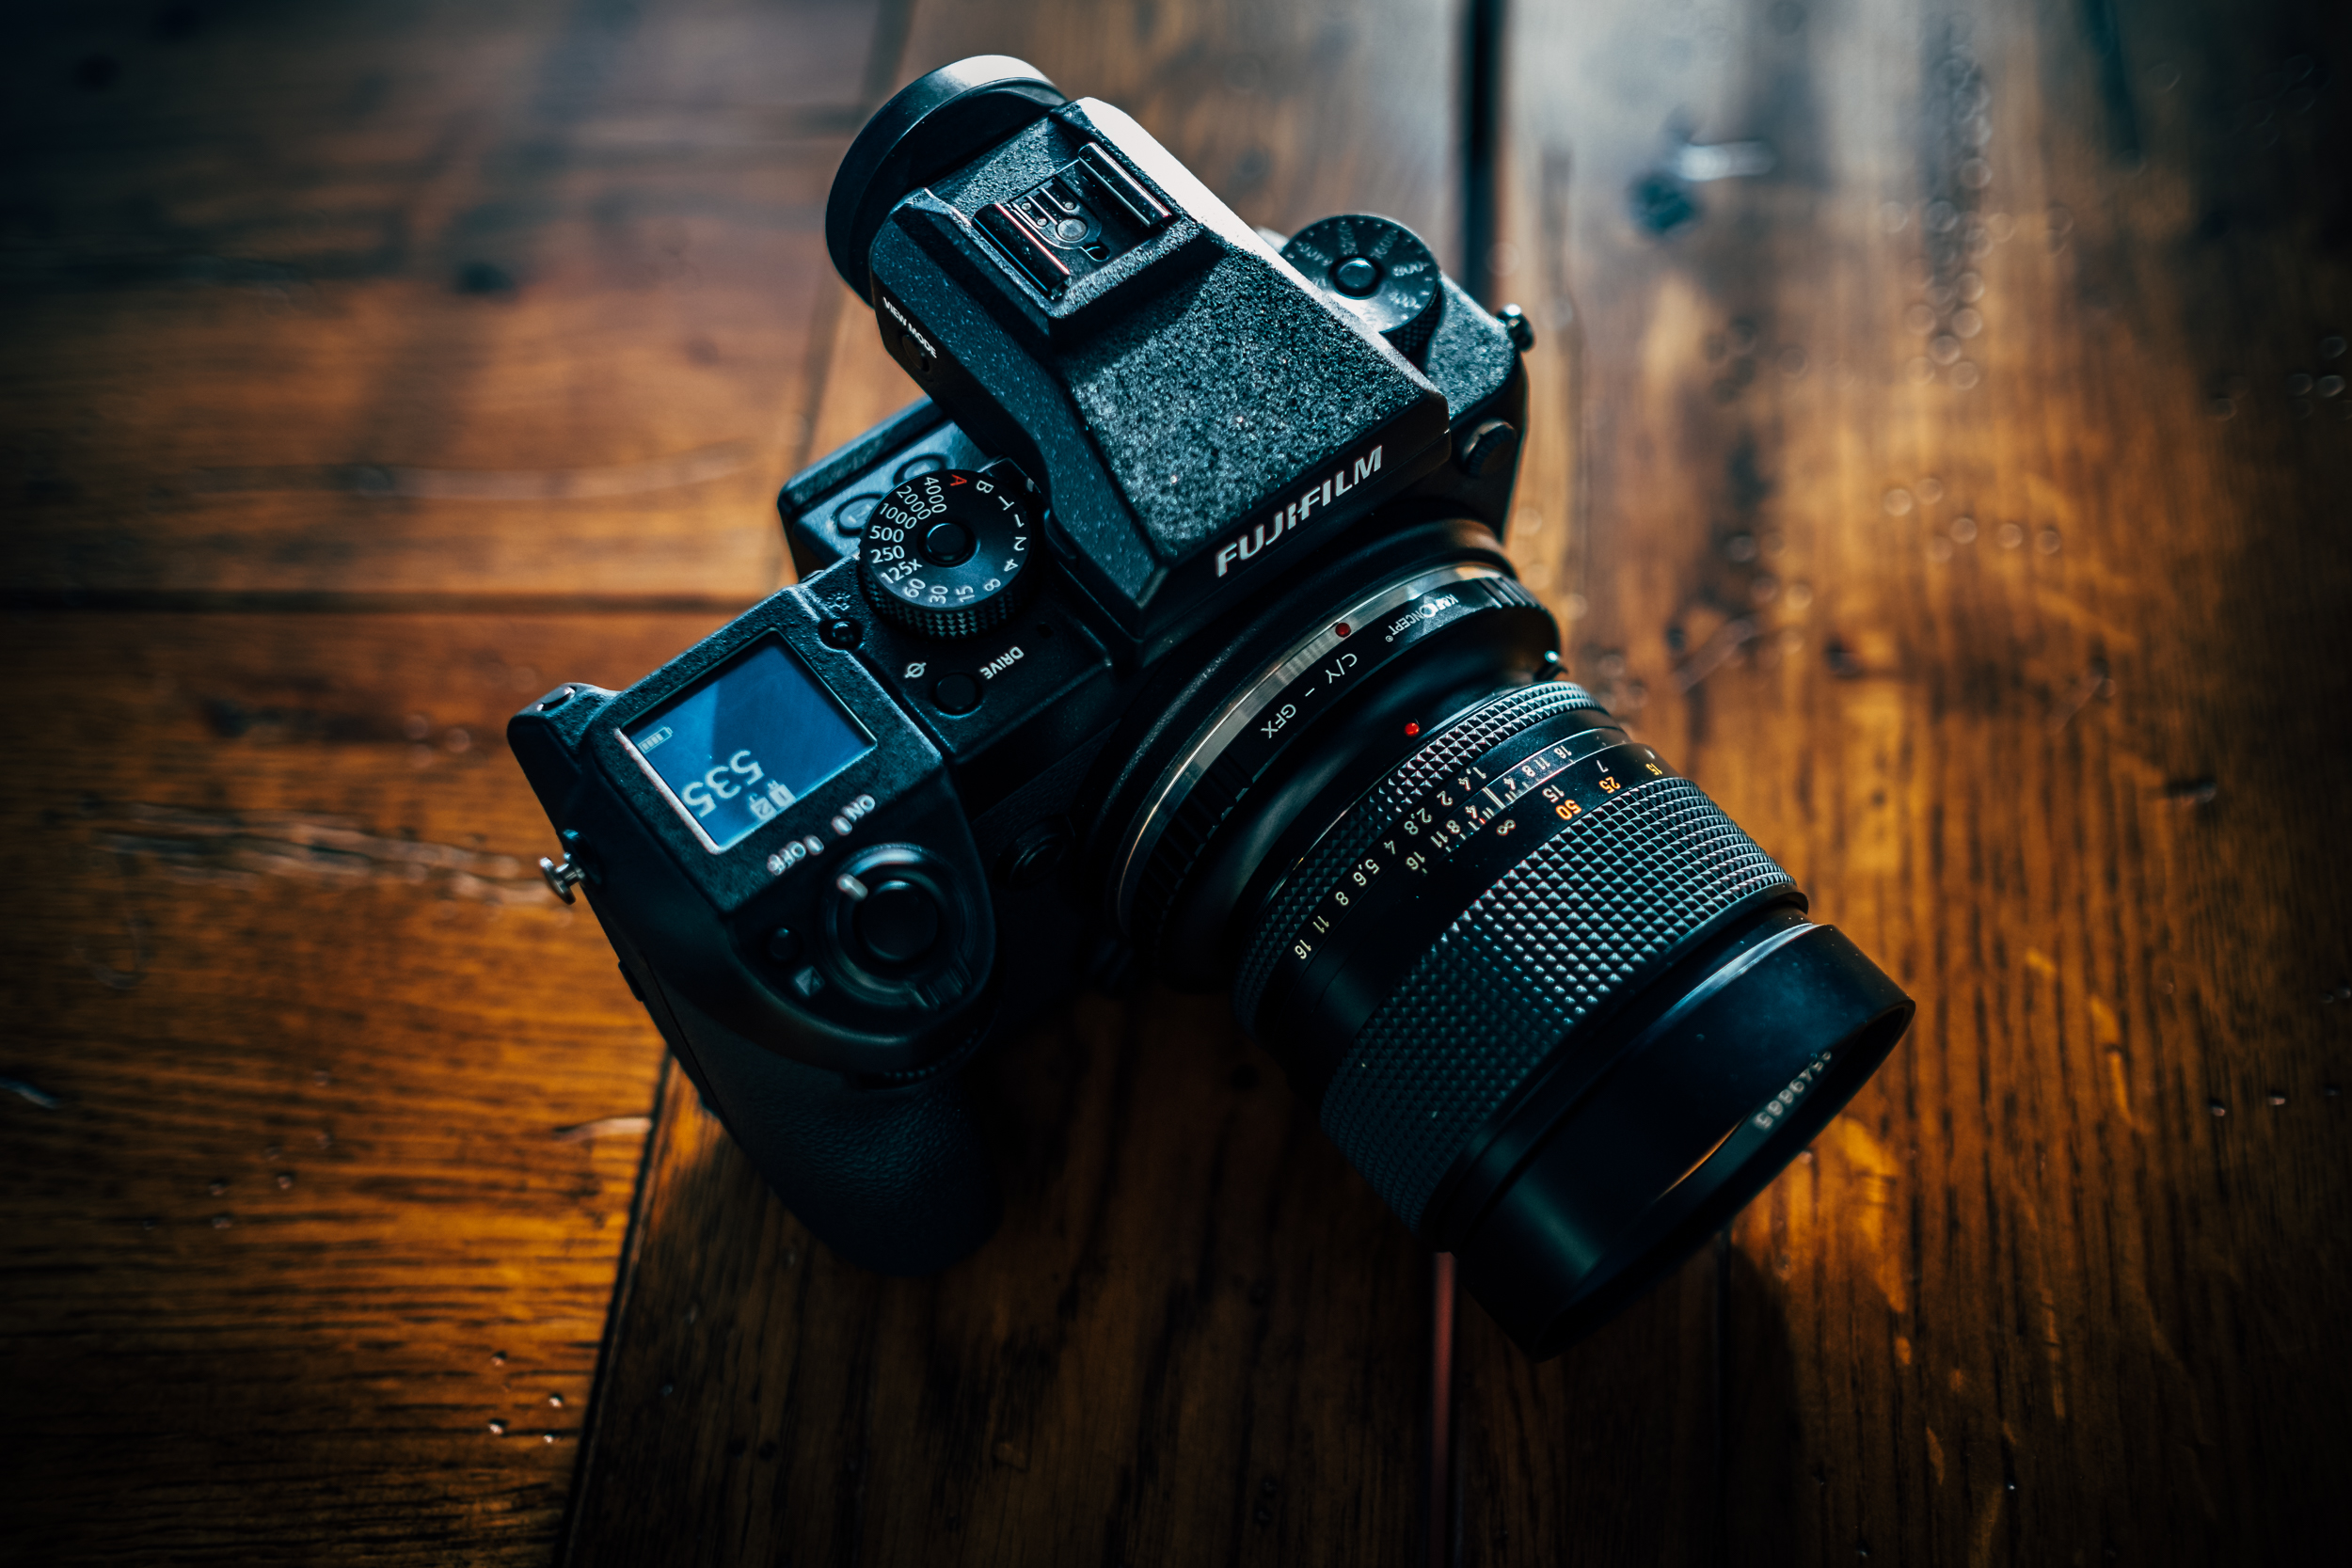 The Fuji GFX with Adapted 85mm 1.4 Zeiss Planar